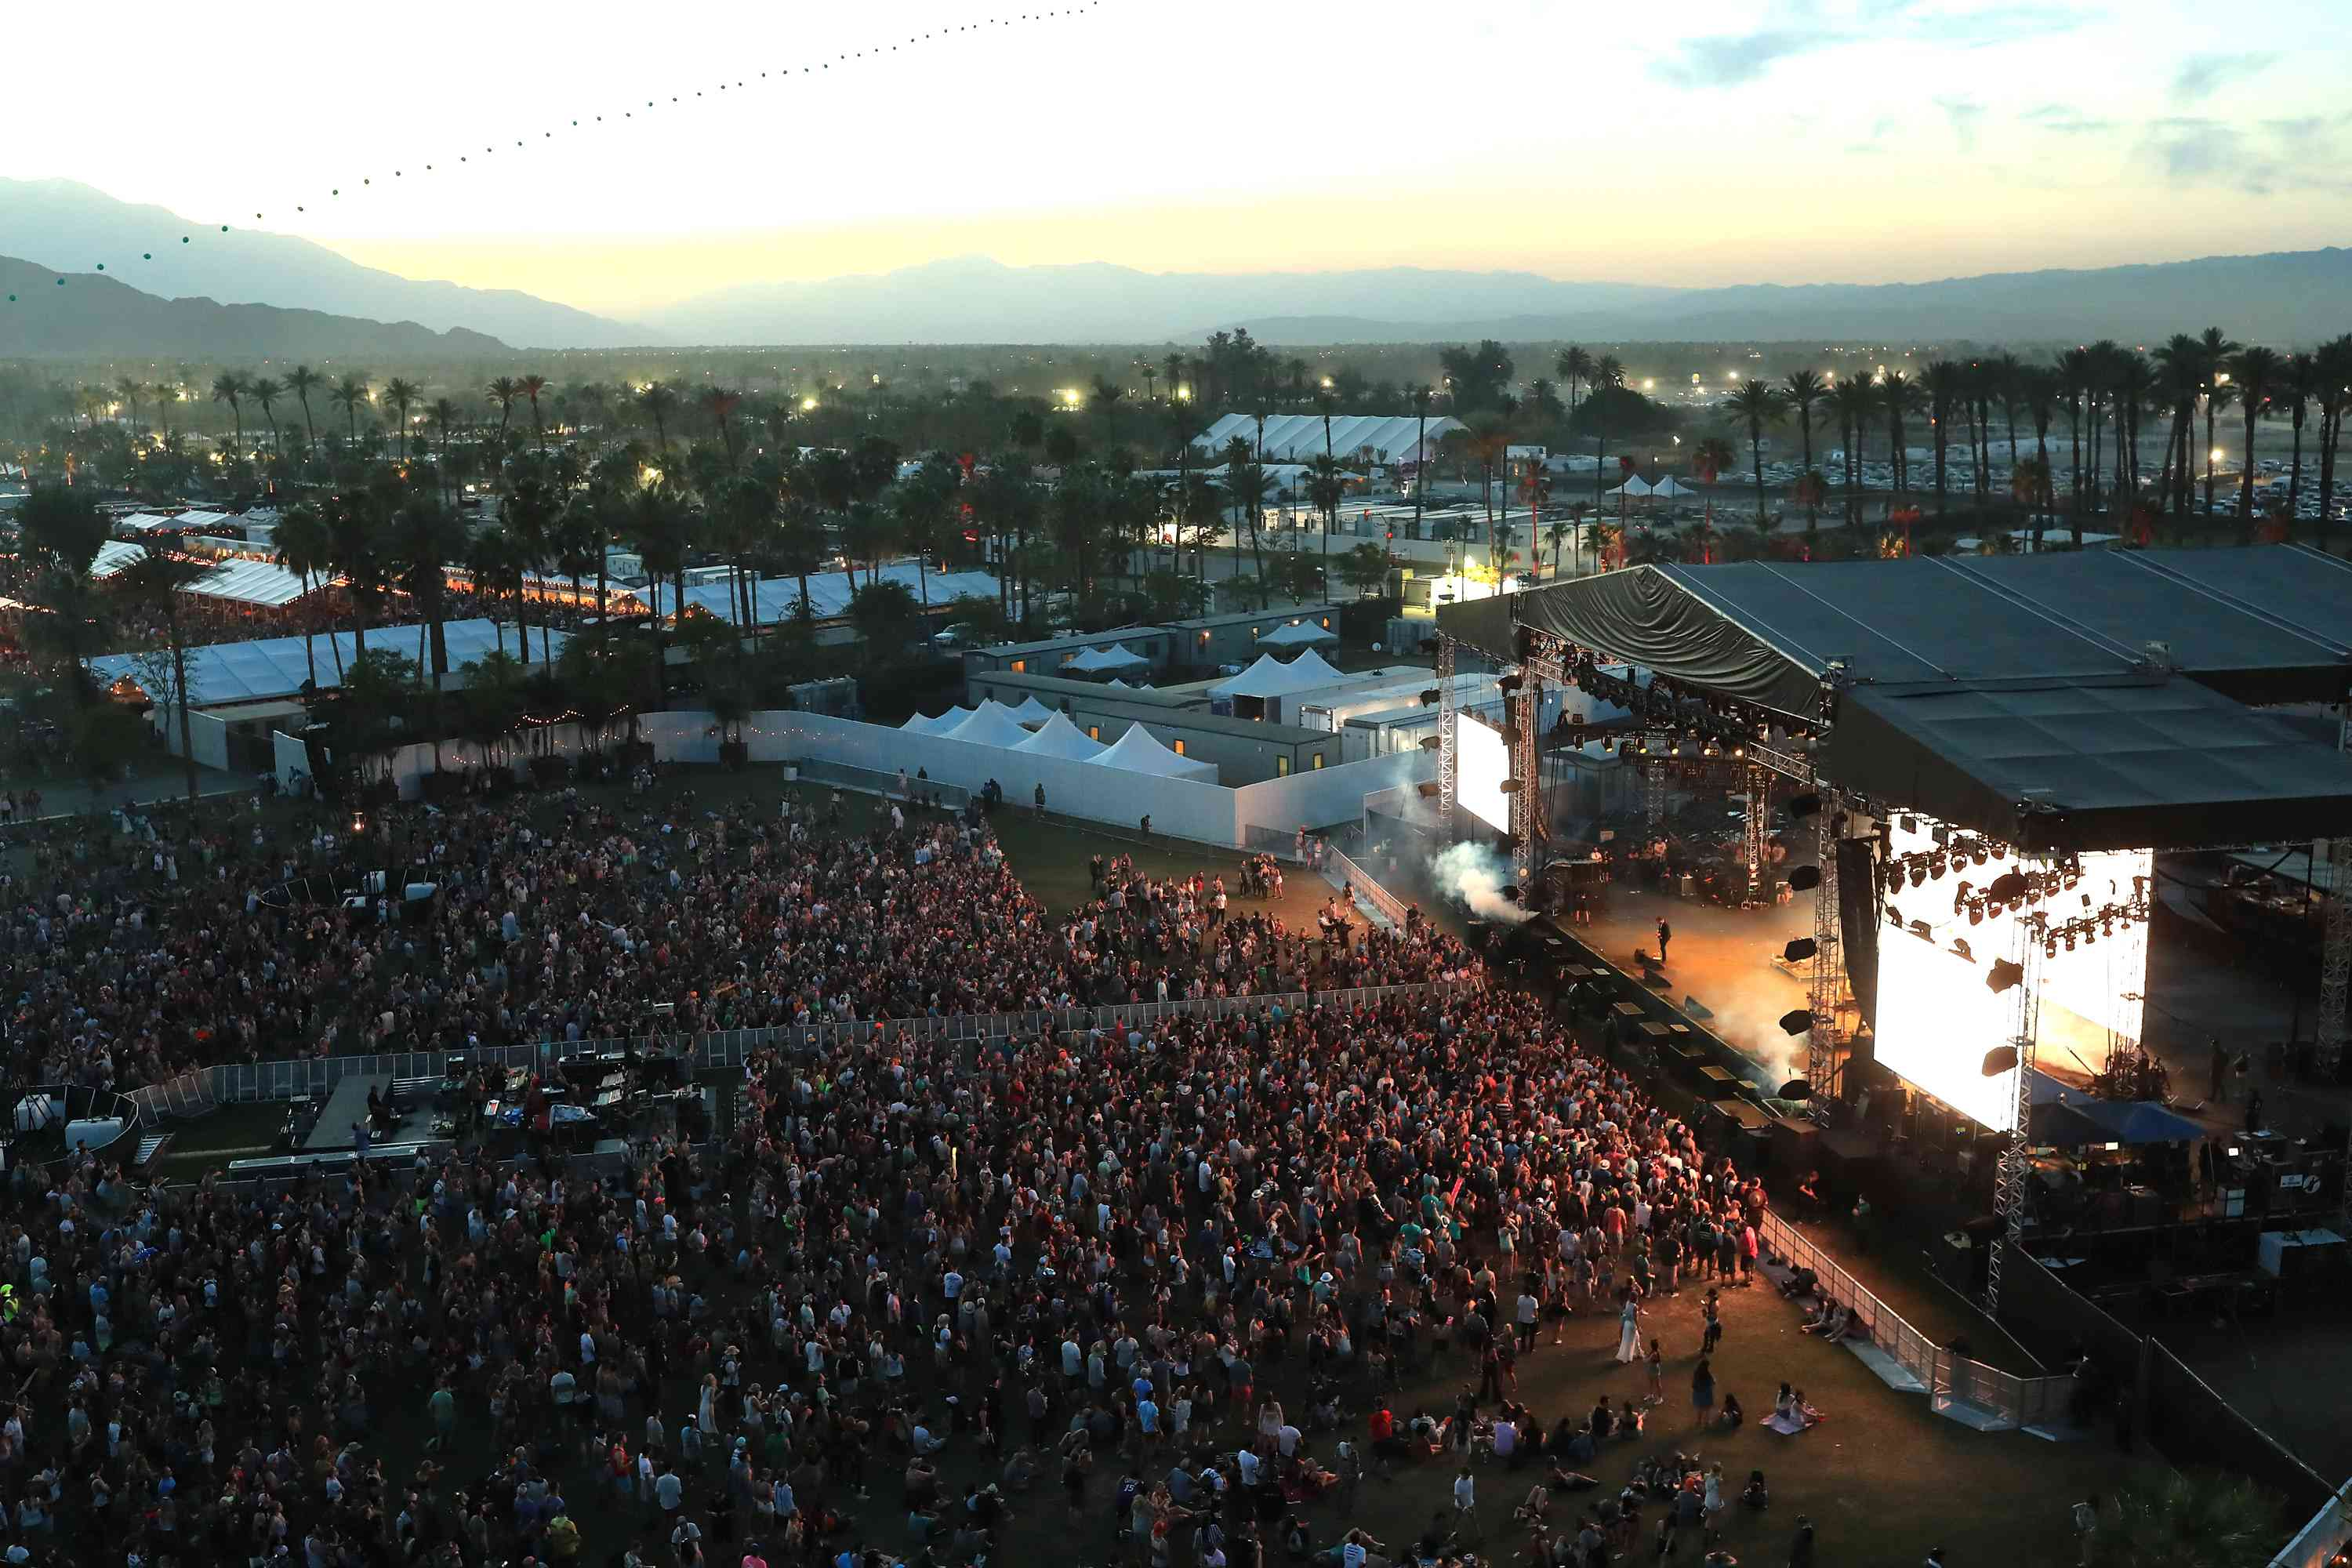 Aerial view of sunset over Coachella Music and Art Fesetival with a crowd of people facing toward a lit stage with palm trees and mountains in the distance